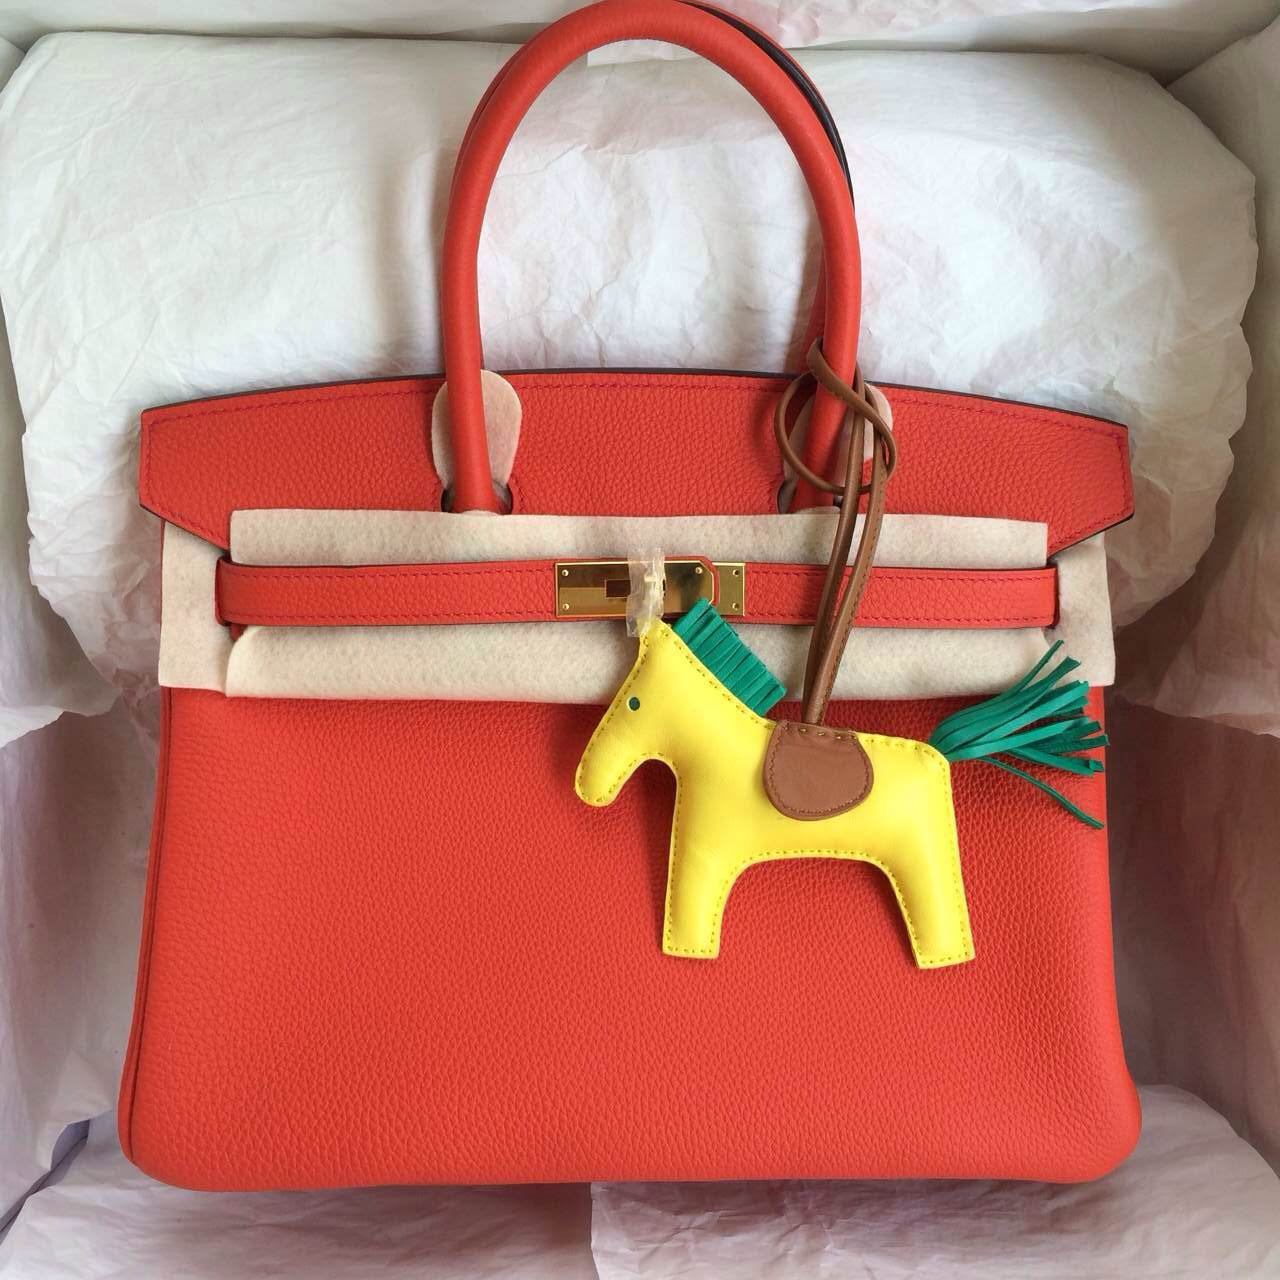 Hermes Birkin30 Hand Stitching Bags 9T Flame Red France Togo Leather